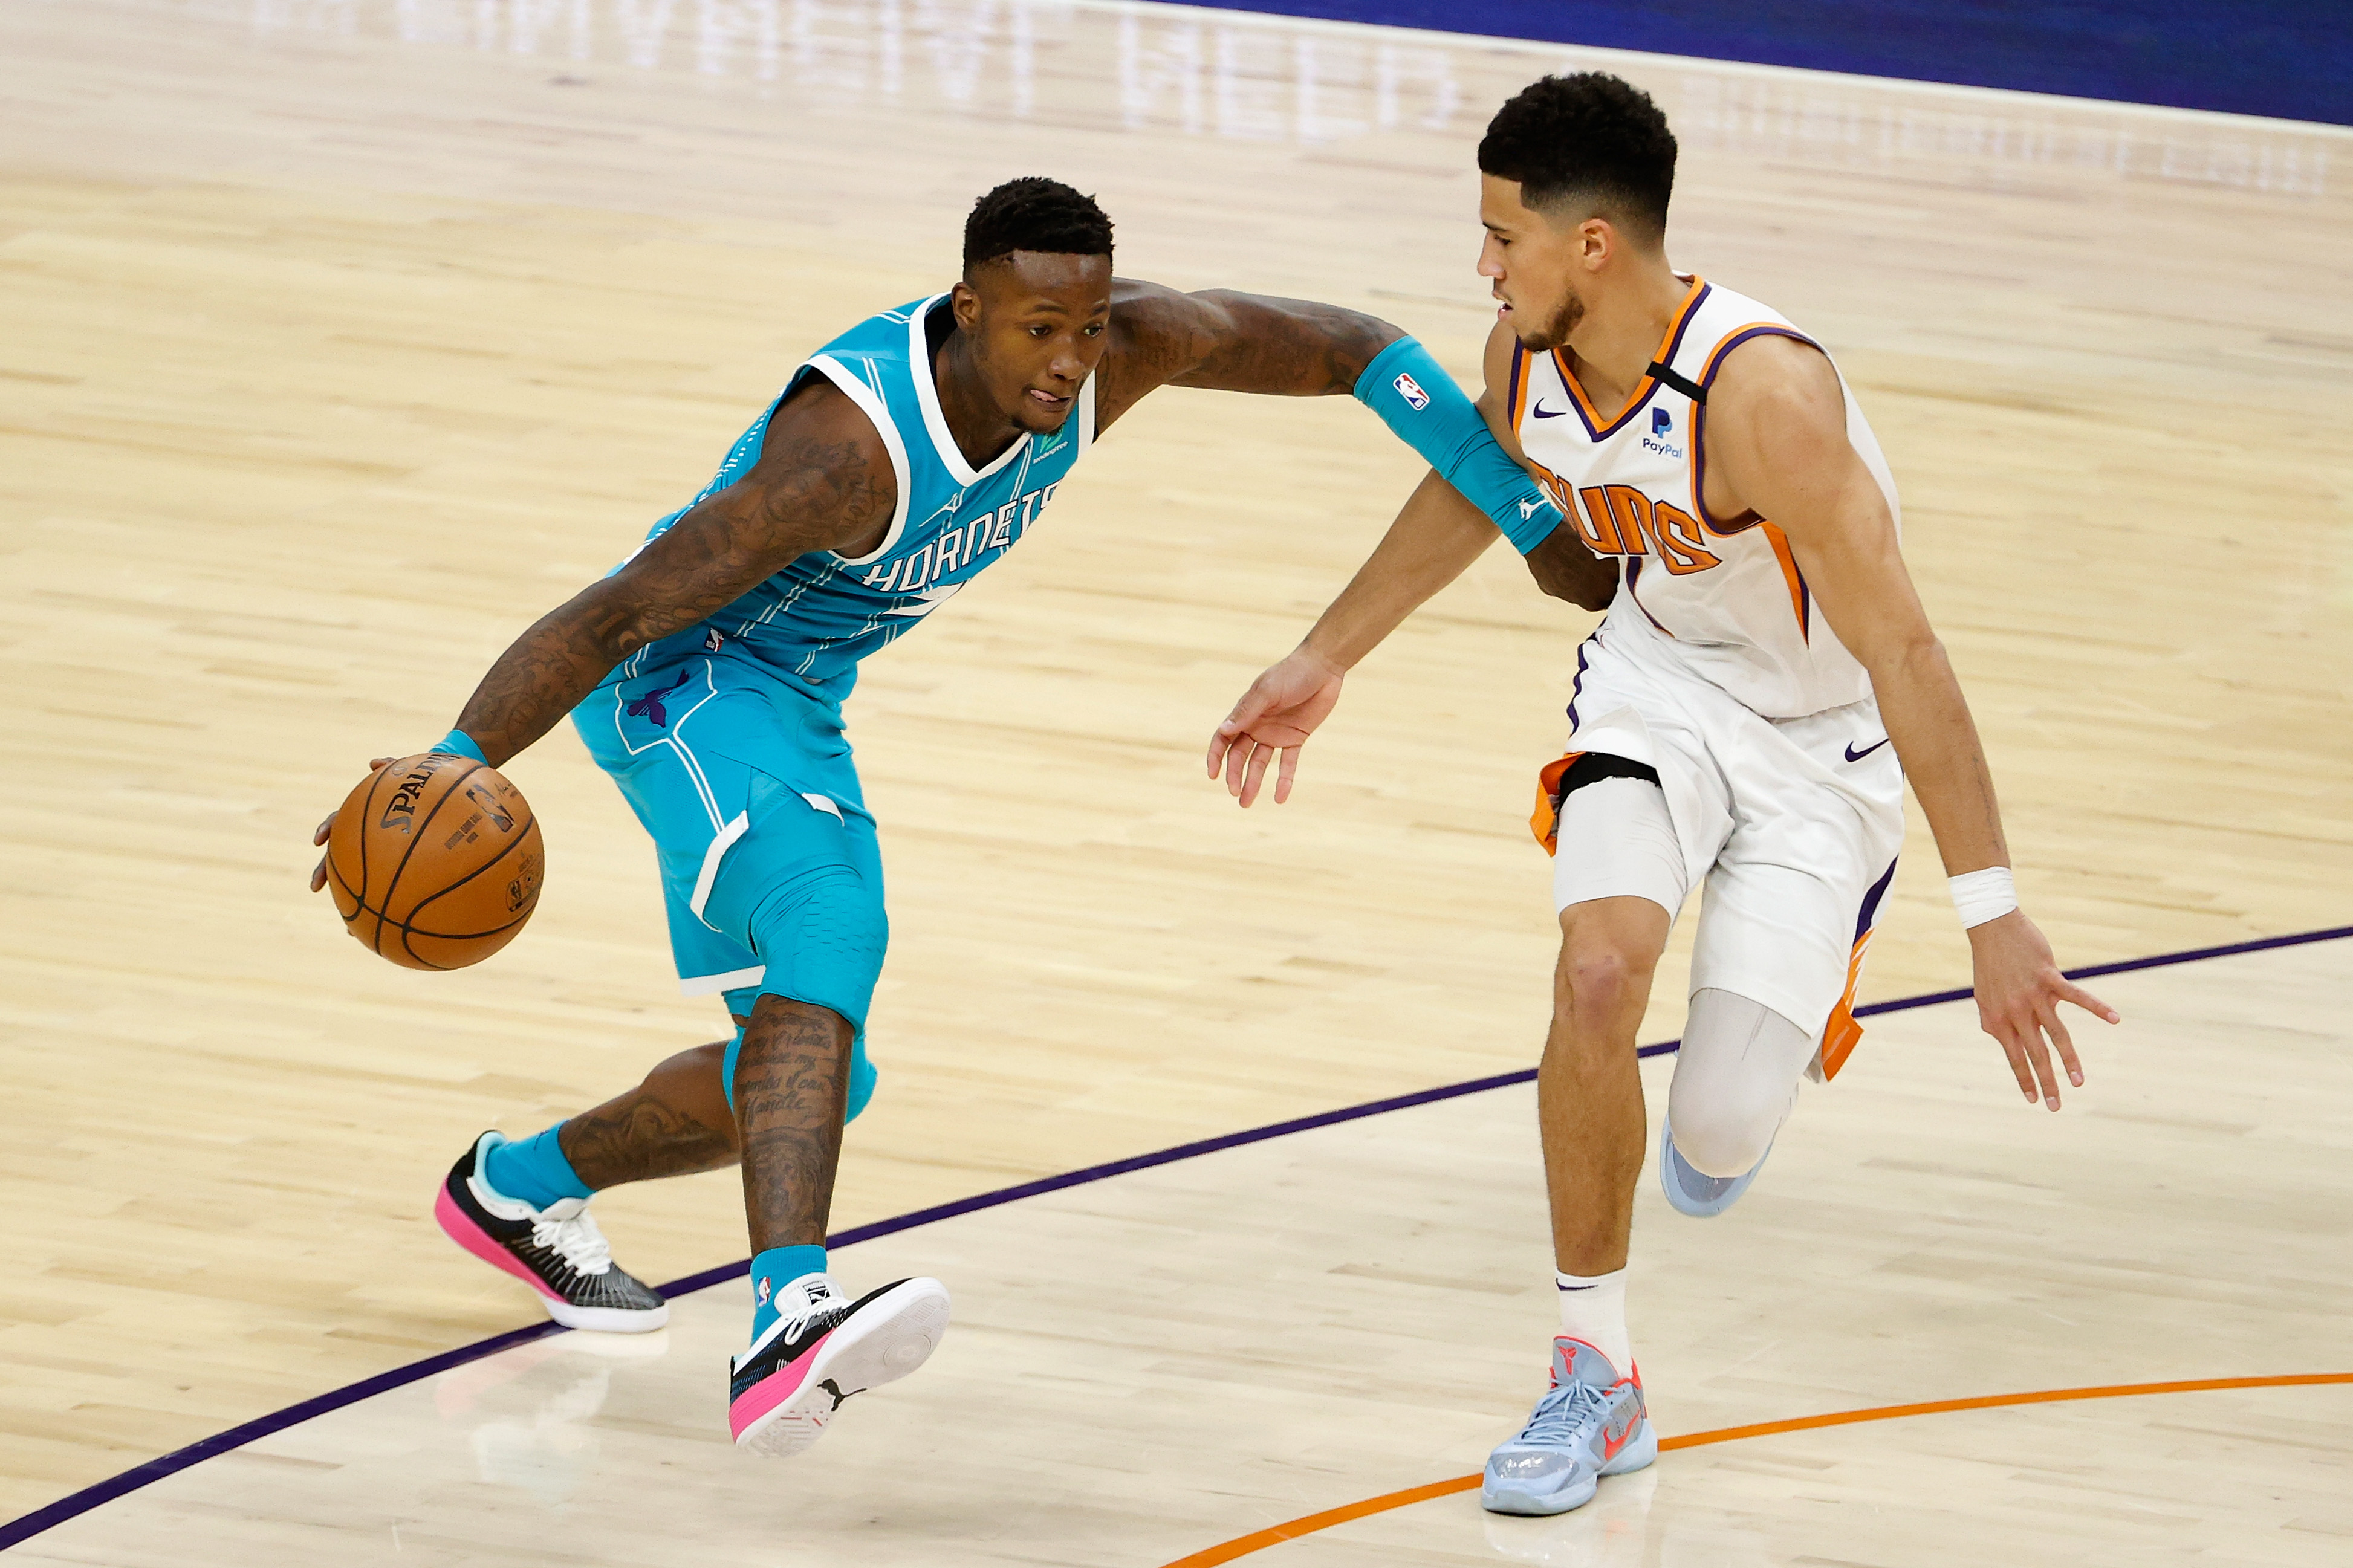 Terry Rozier of the Charlotte Hornets handles the ball against Devin Booker of the Phoenix Suns during the first half of the NBA game at Phoenix Suns Arena on February 24, 2021 in Phoenix, Arizona.